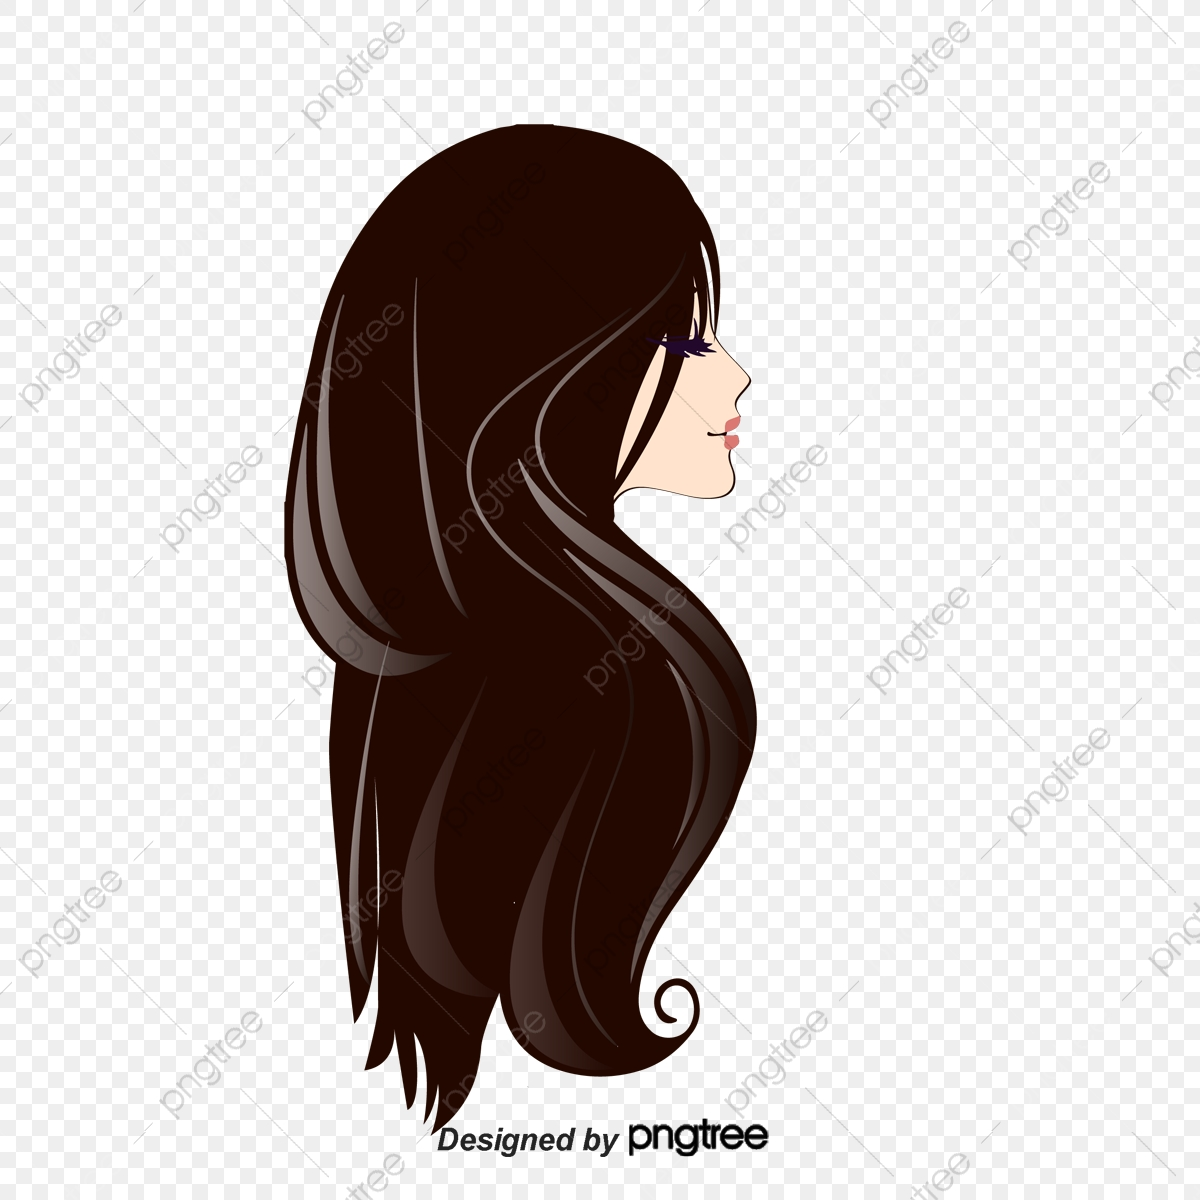 cartoon hair beauty silk psd pngtree upgrade file authorization license resource premium commercial plan